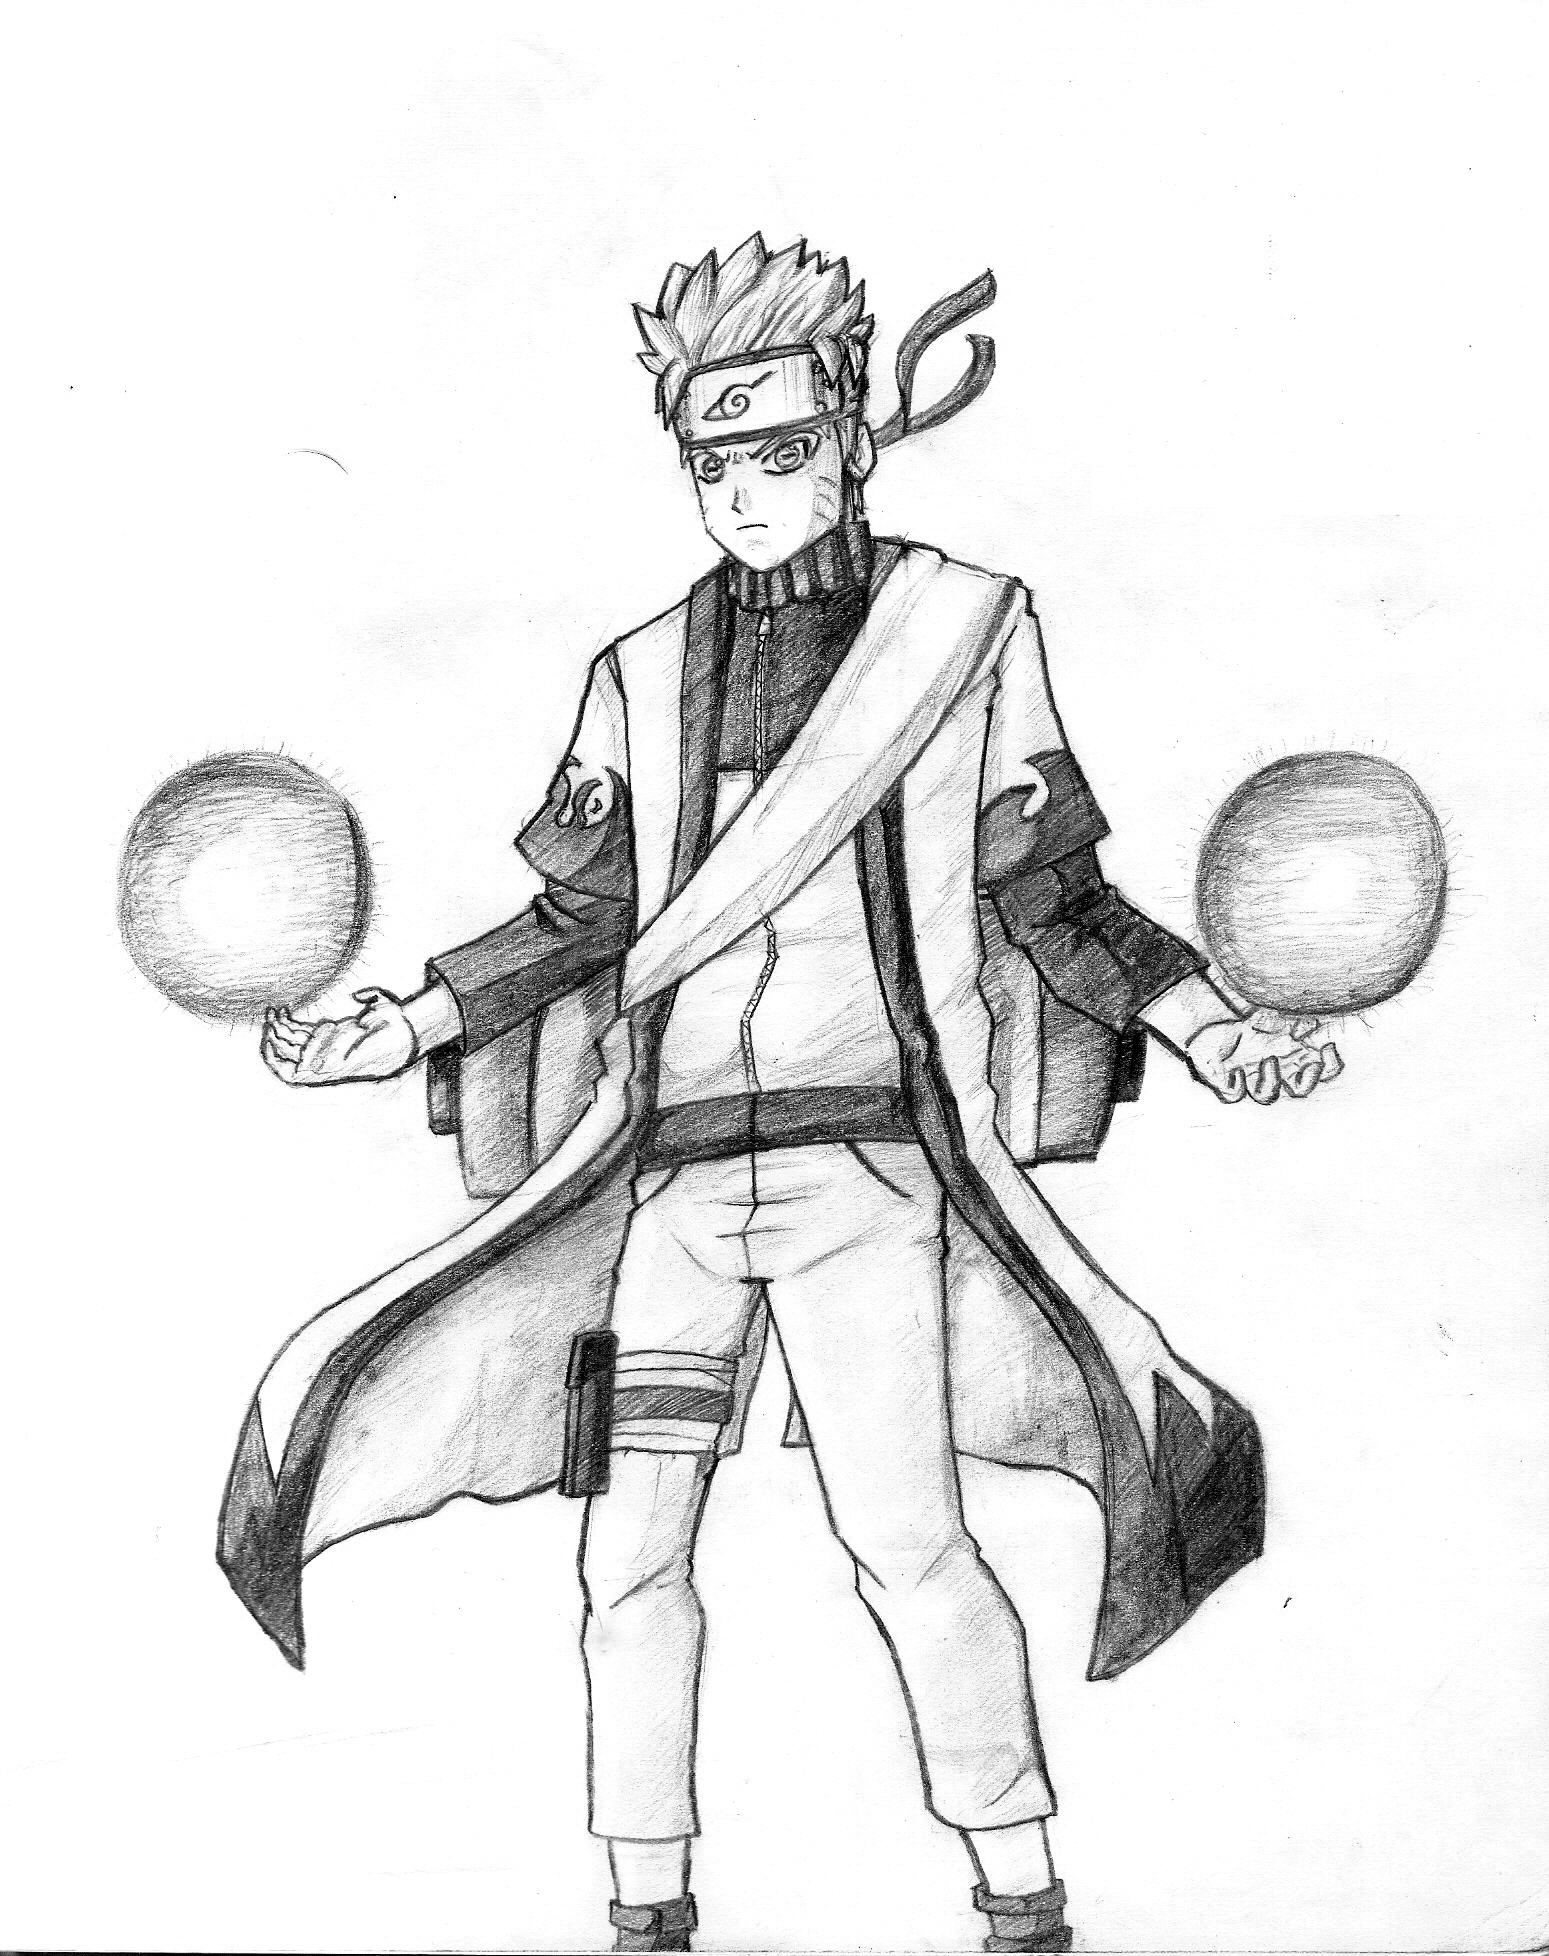 Naruto Sage Mode by toonager on DeviantArt